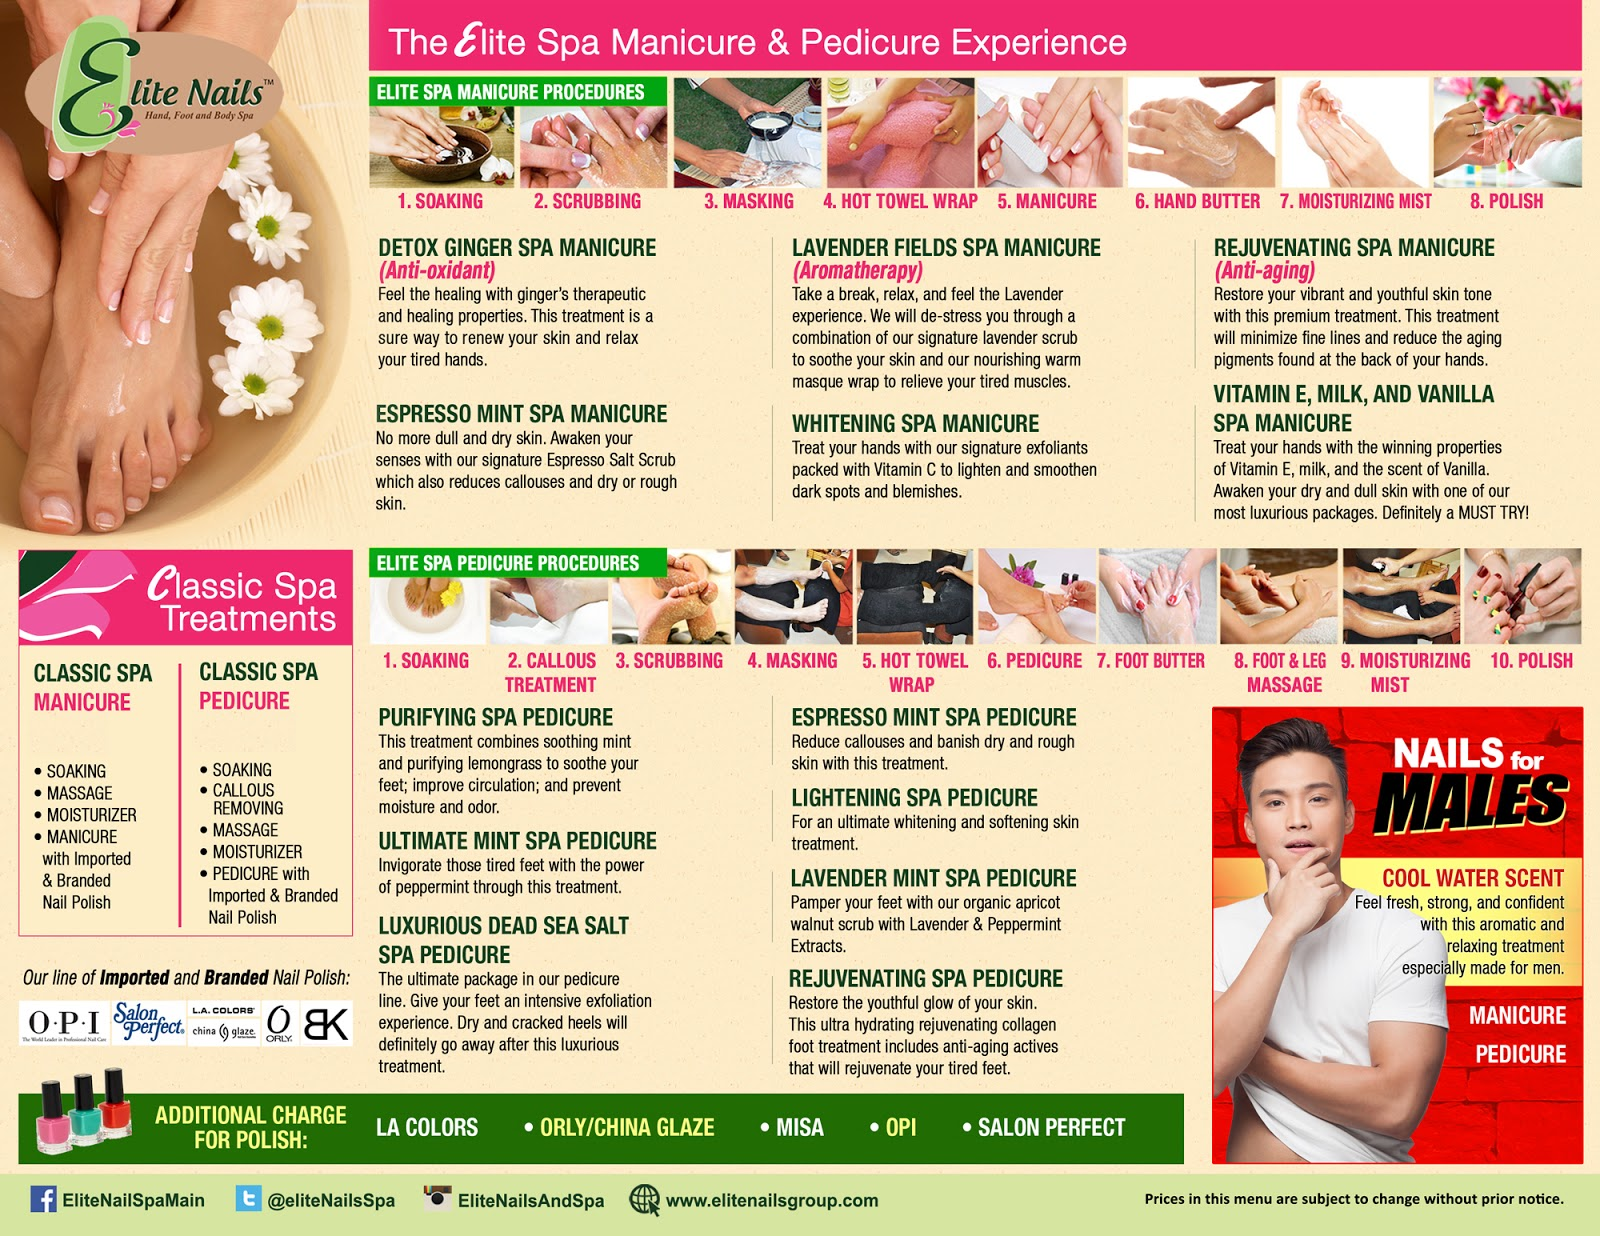 Elite Nails Hand, Foot and Body Spa: Spa Menu / Services